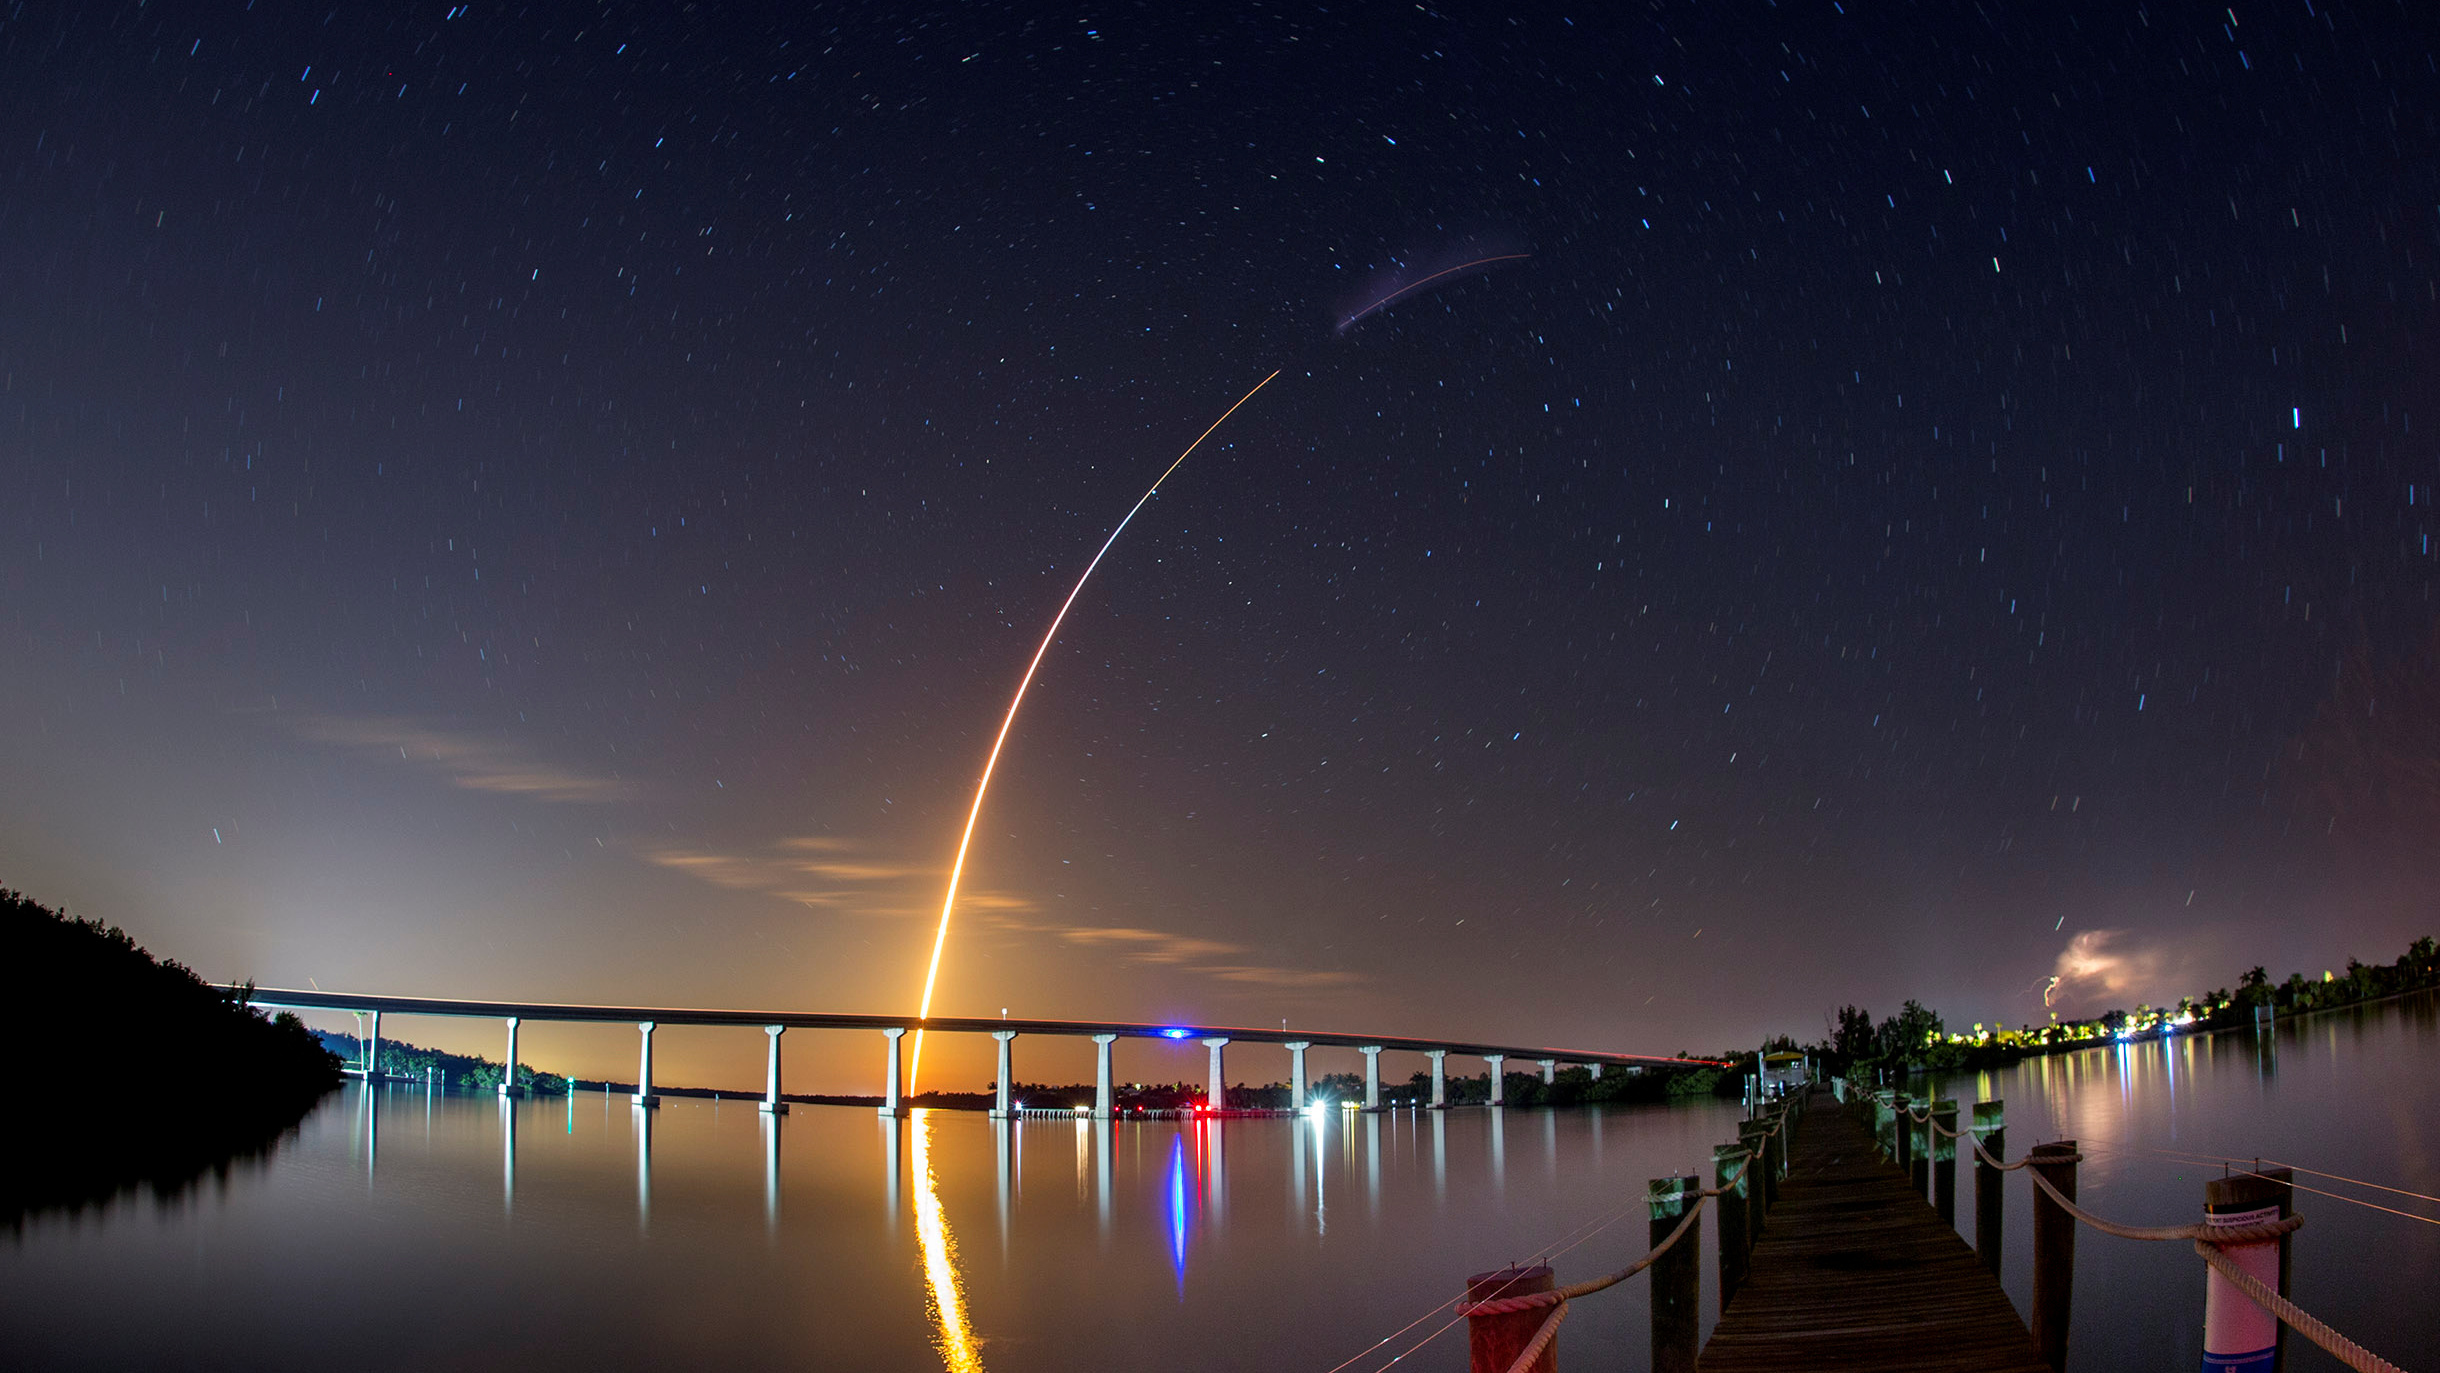 A SpaceX Falcon 9 rocket, carrying the Crew Dragon spacecraft, lifts off on an uncrewed test flight to the International Space Station from the Kennedy Space Center as viewed in Vero Beach, Florida, U.S., March 2, 2019.